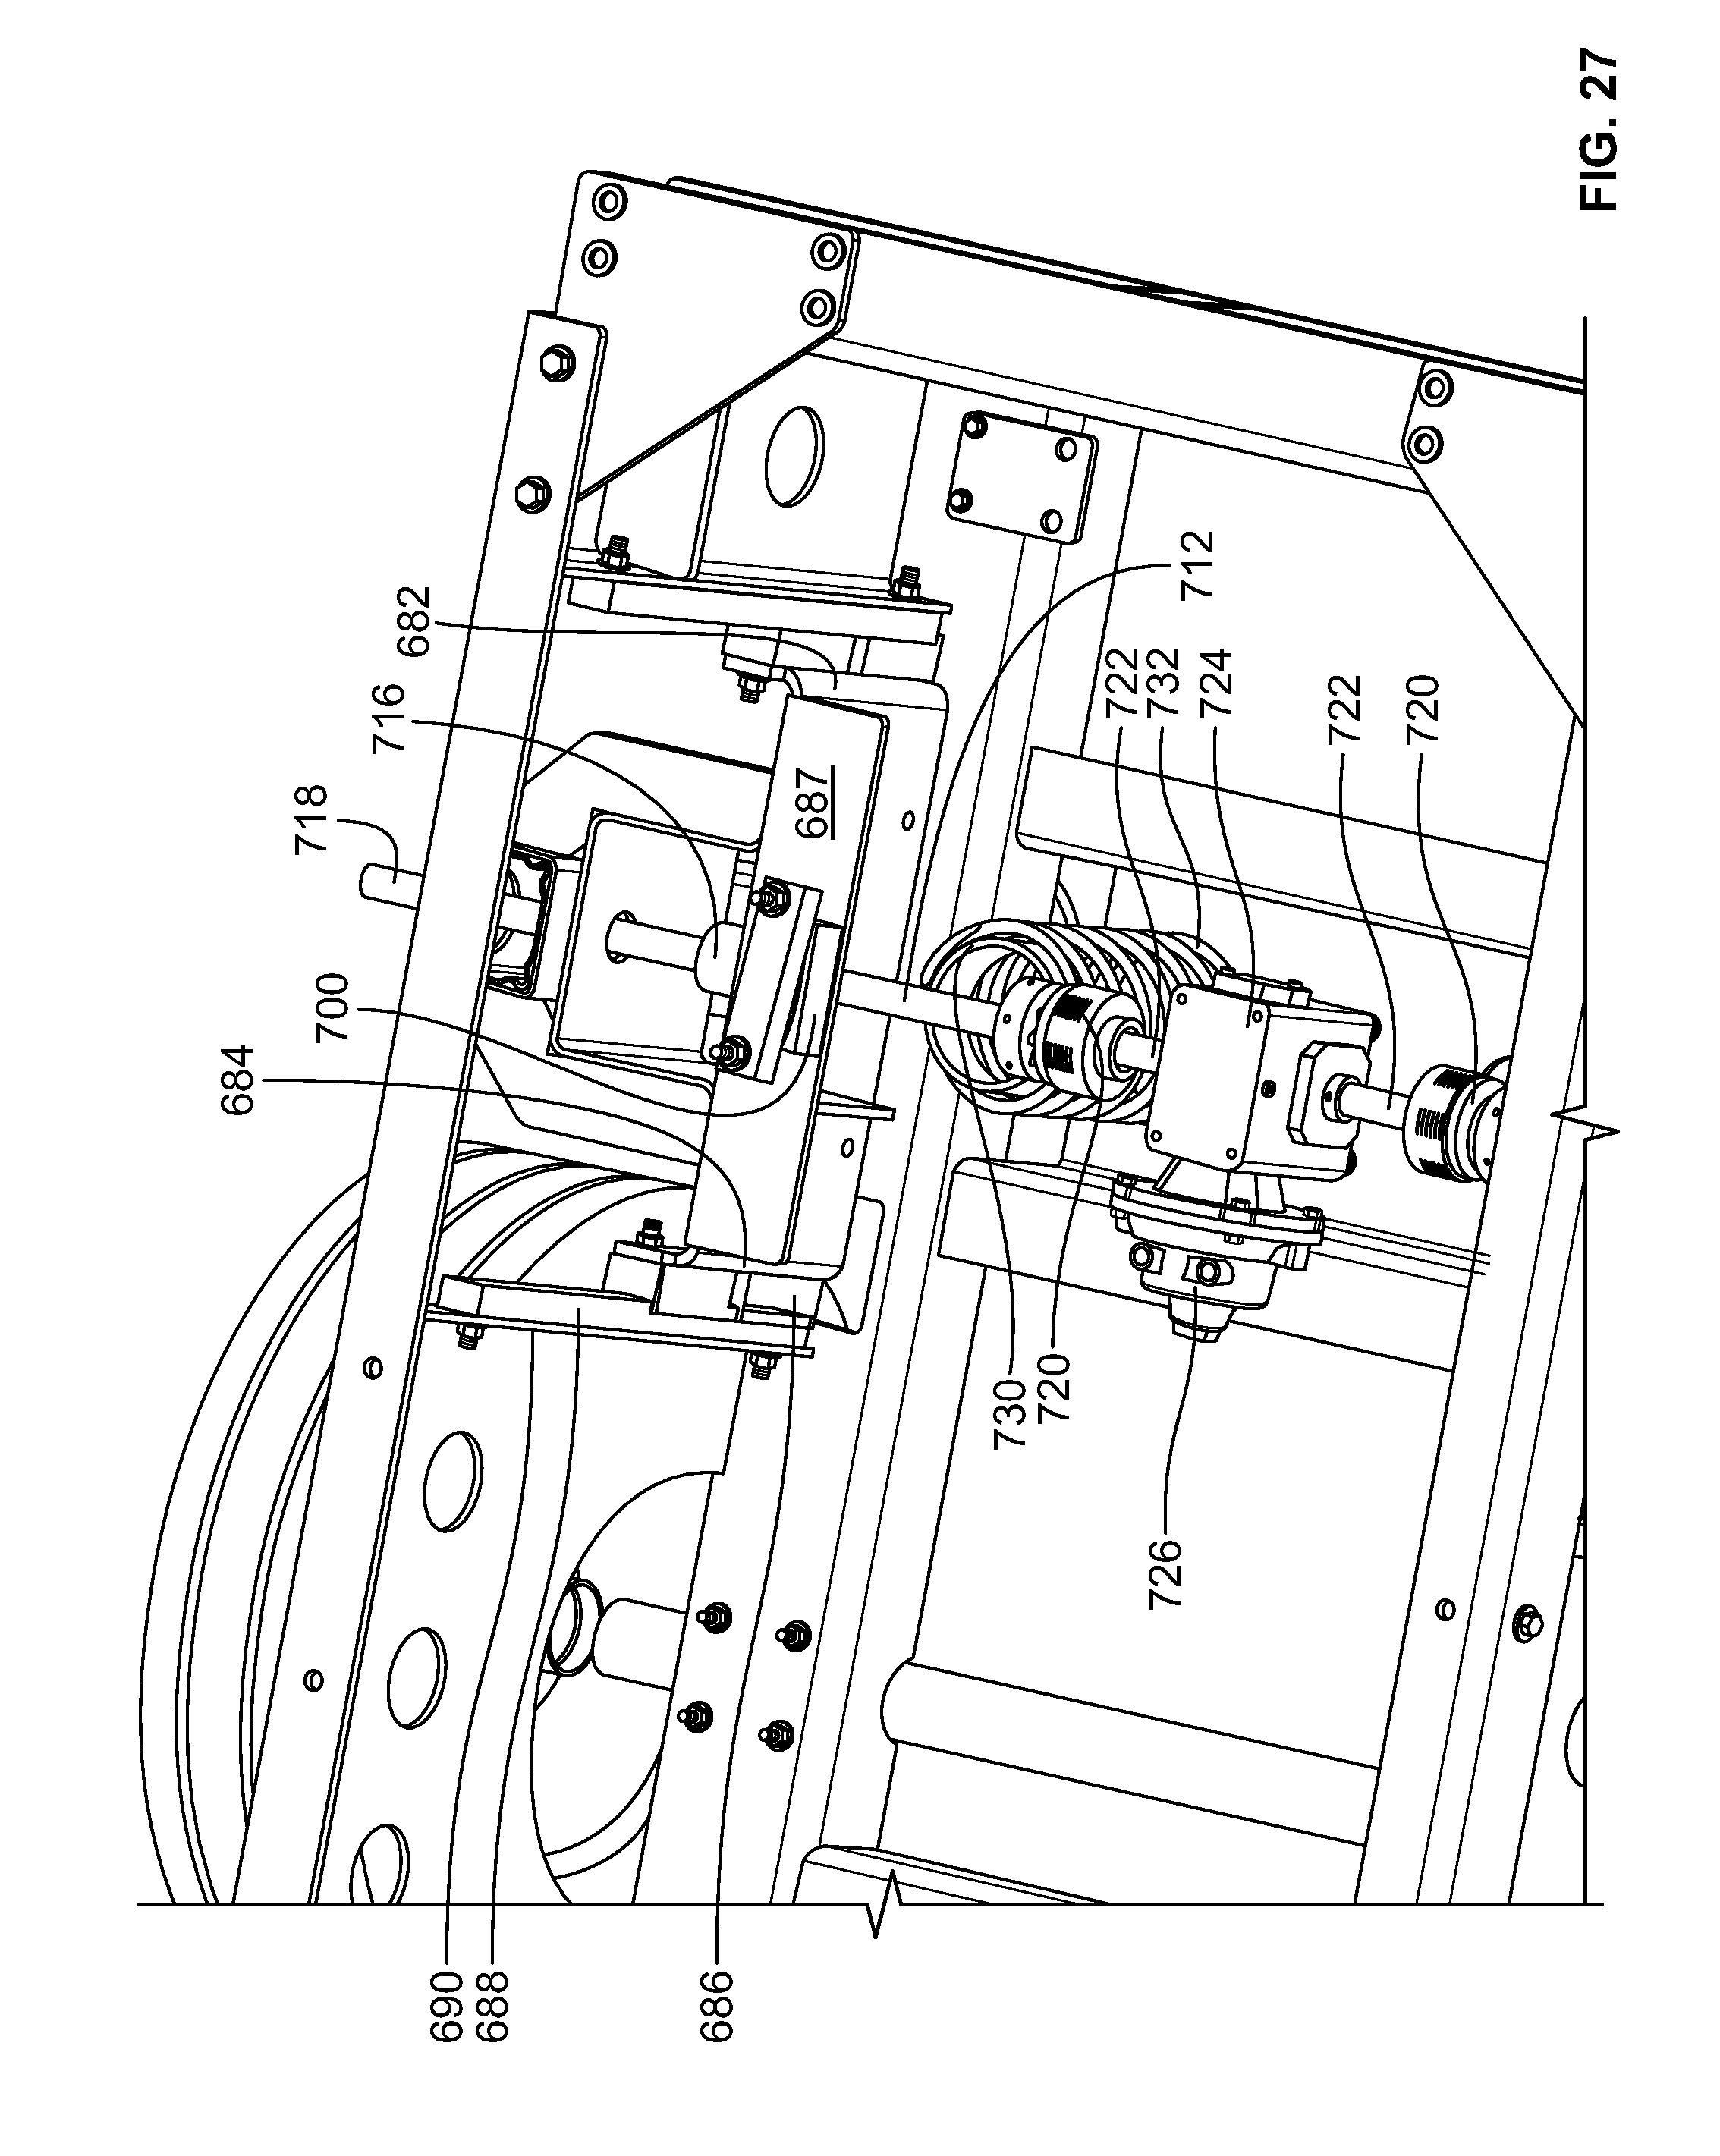 Light Switch Diagram For Farmall H